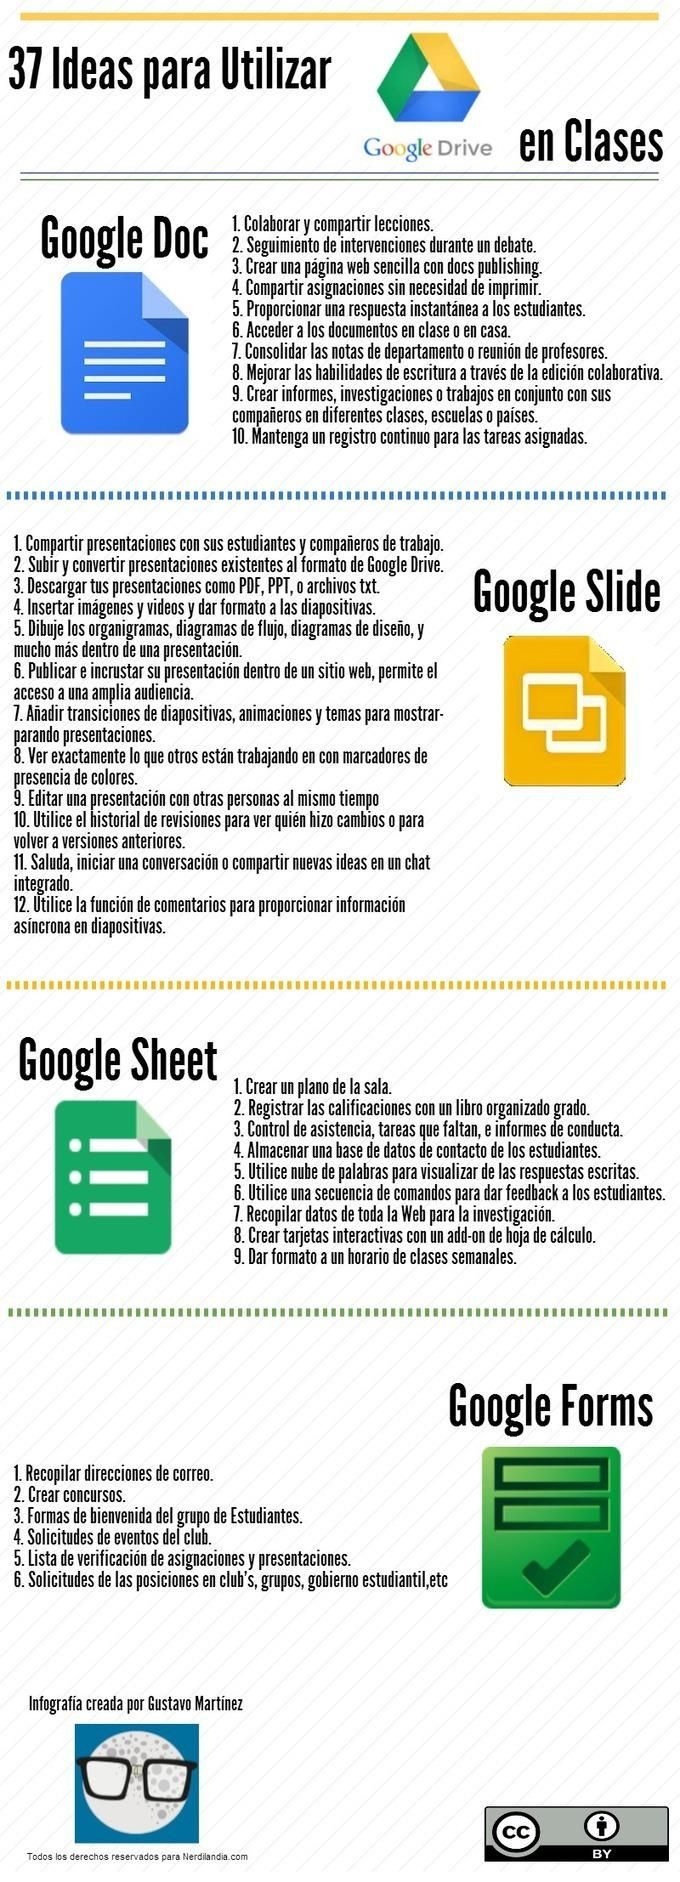 127 best Flipped learning images on Pinterest | Flipped classroom ...